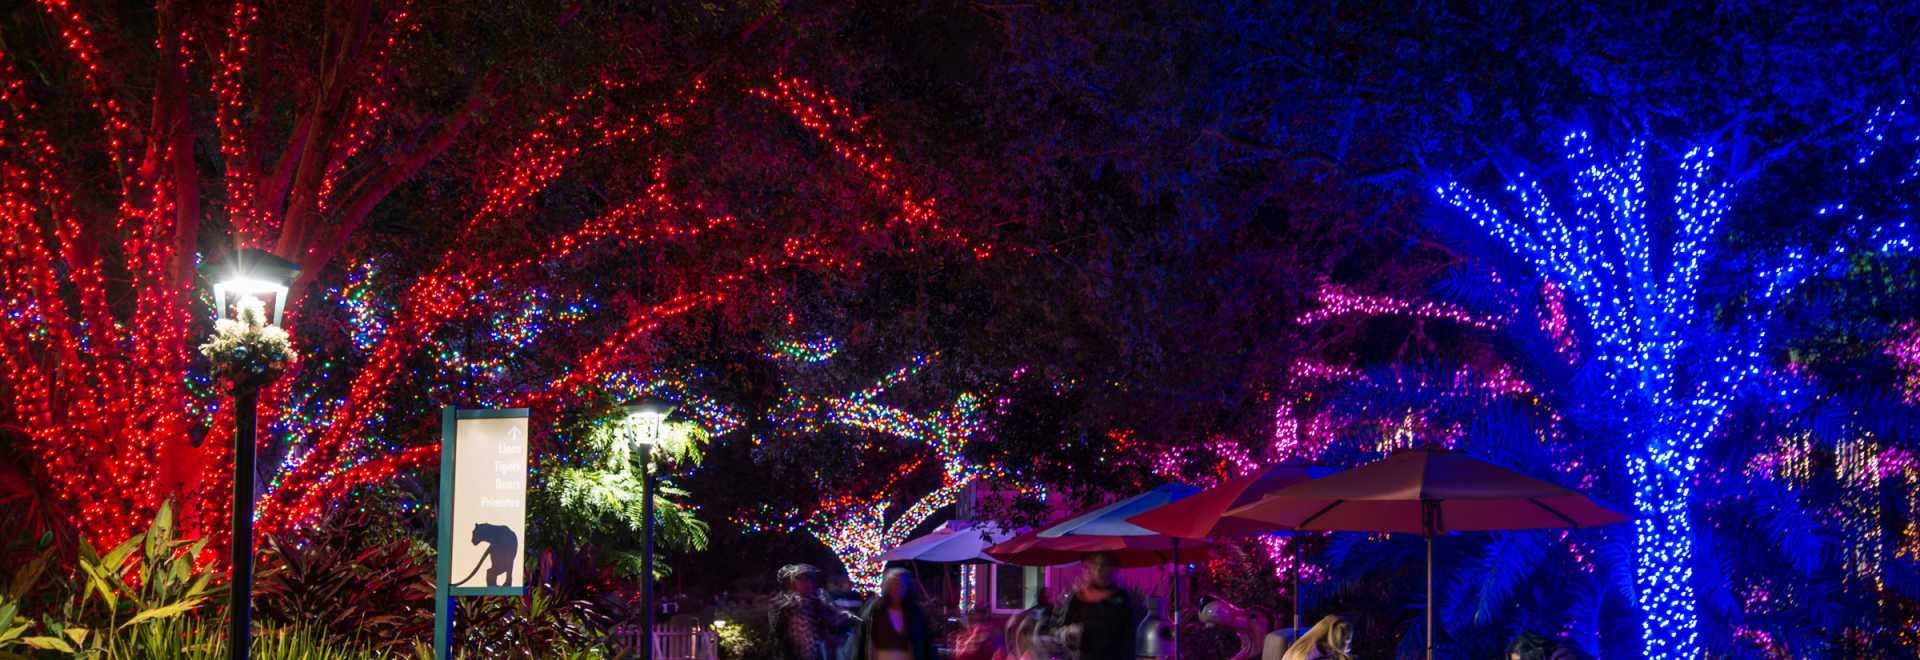 Holidays in Houston | Find Christmas Events, Concerts & Festivals